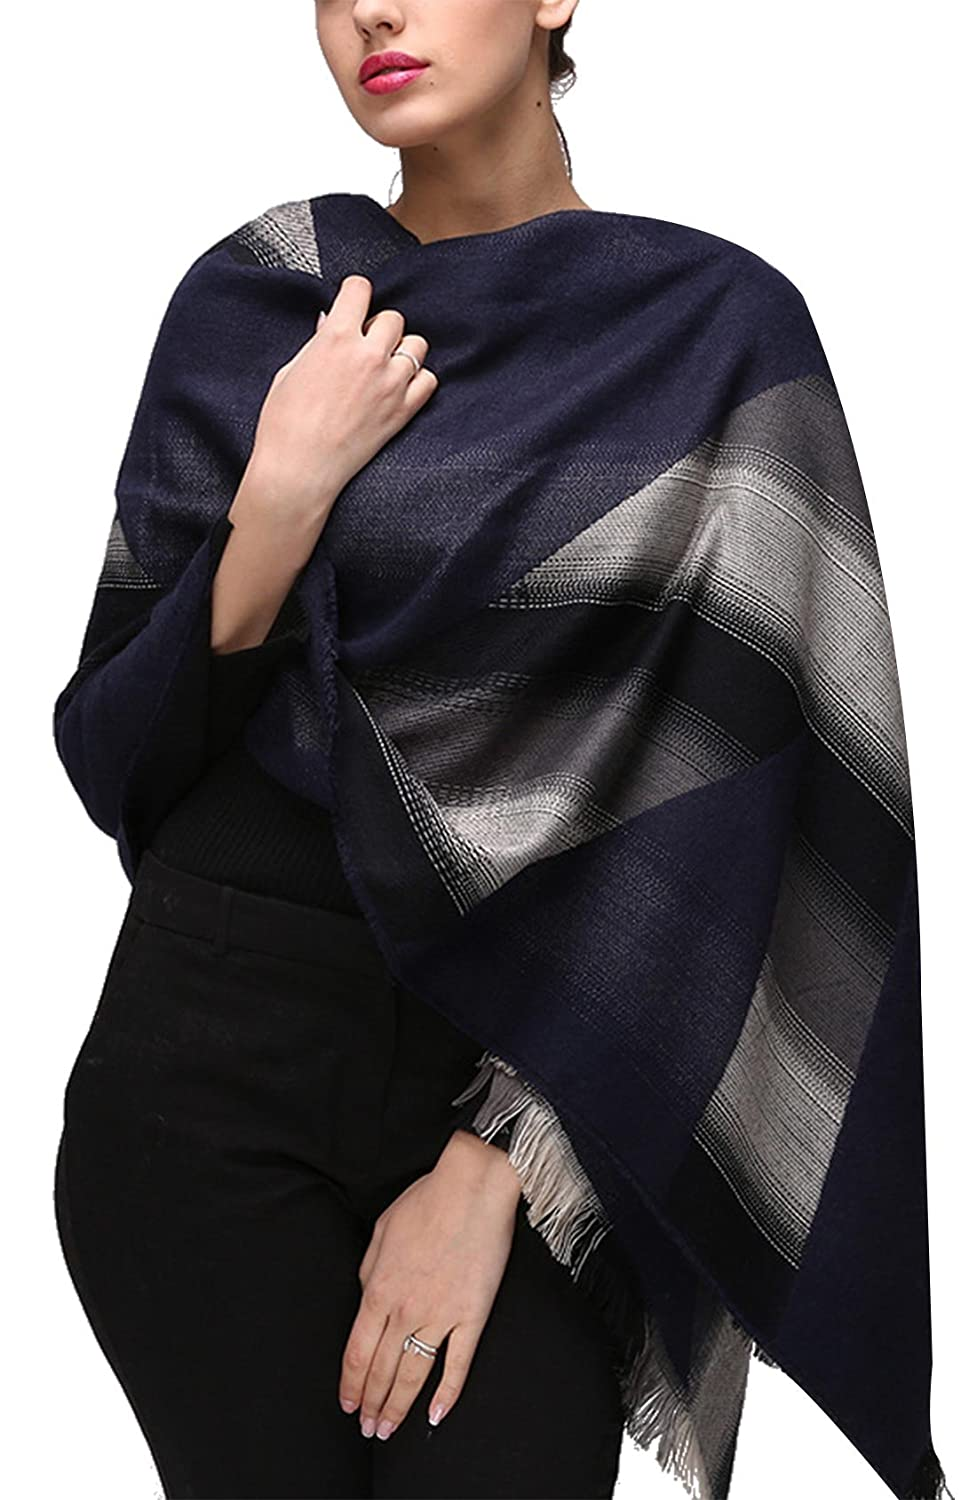 Women's Scarf Winter Fashion Gradient Color Soft Scarf Shawl - Black and White FEOYA